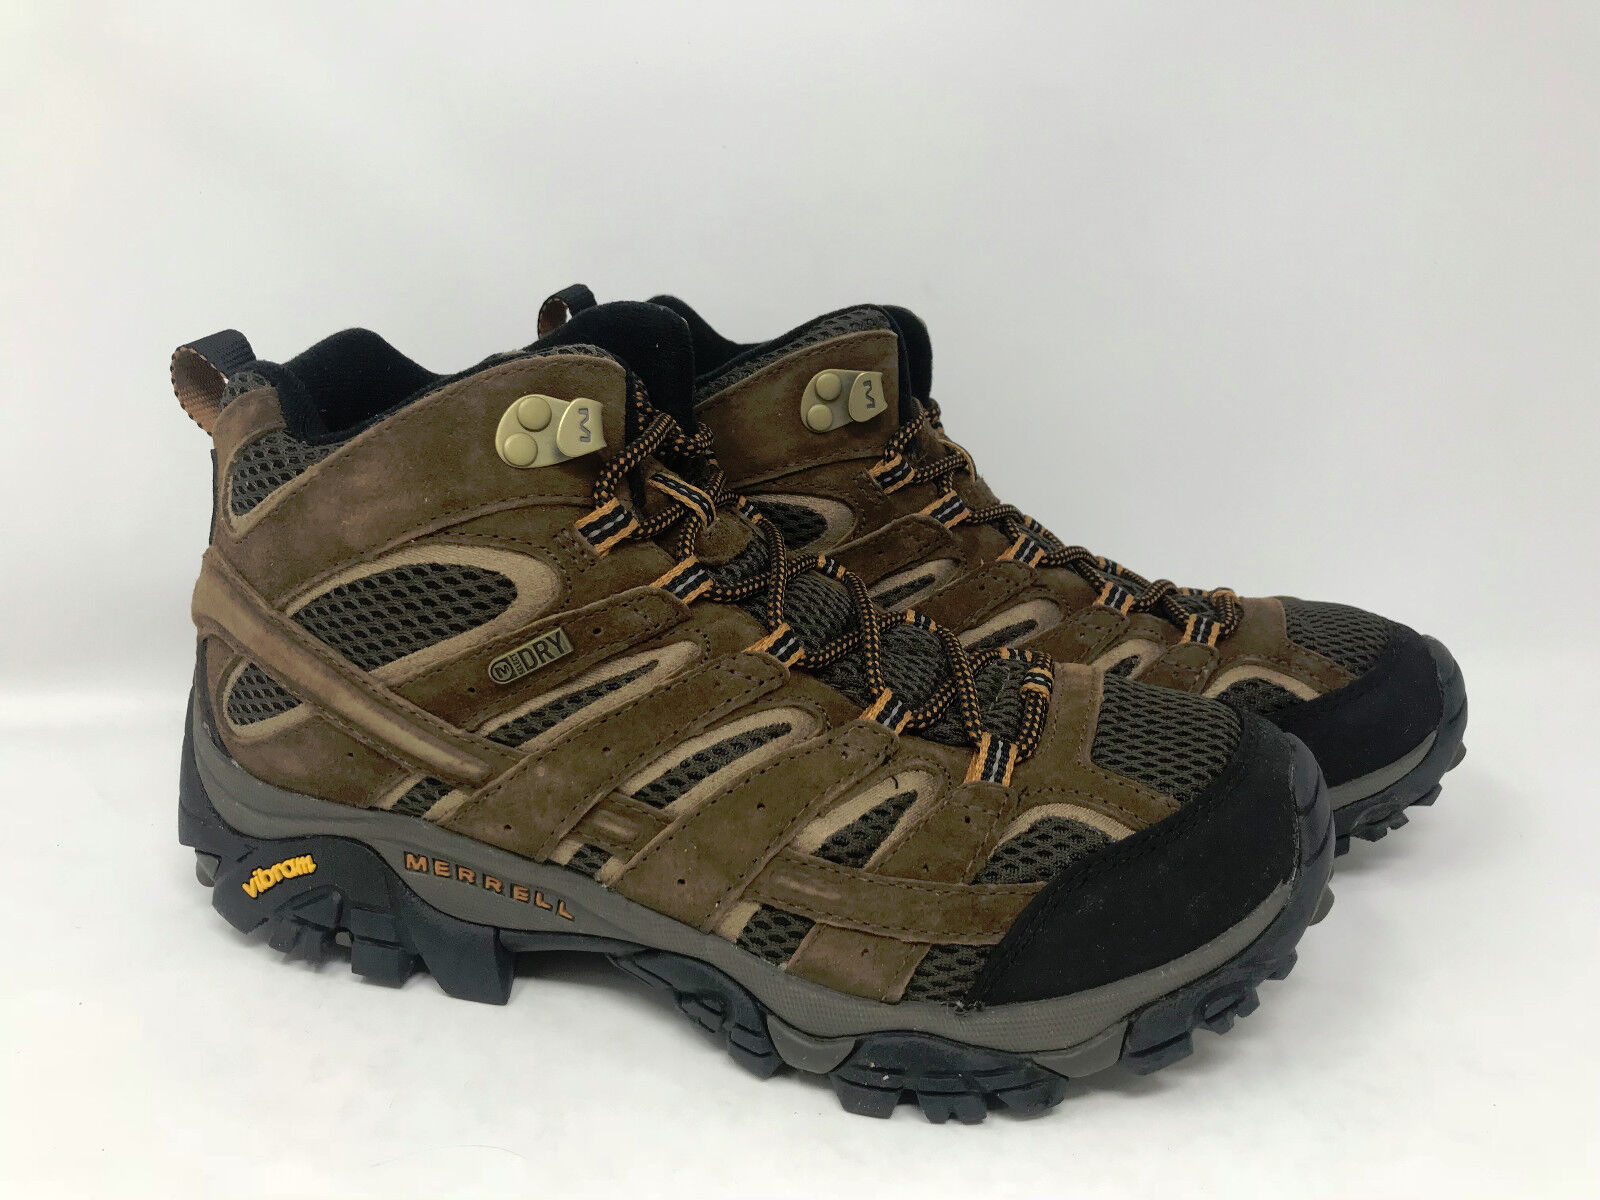 Merrell Men's Moab 2 Mid Waterproof Earth 7.5 J06051 MR1057